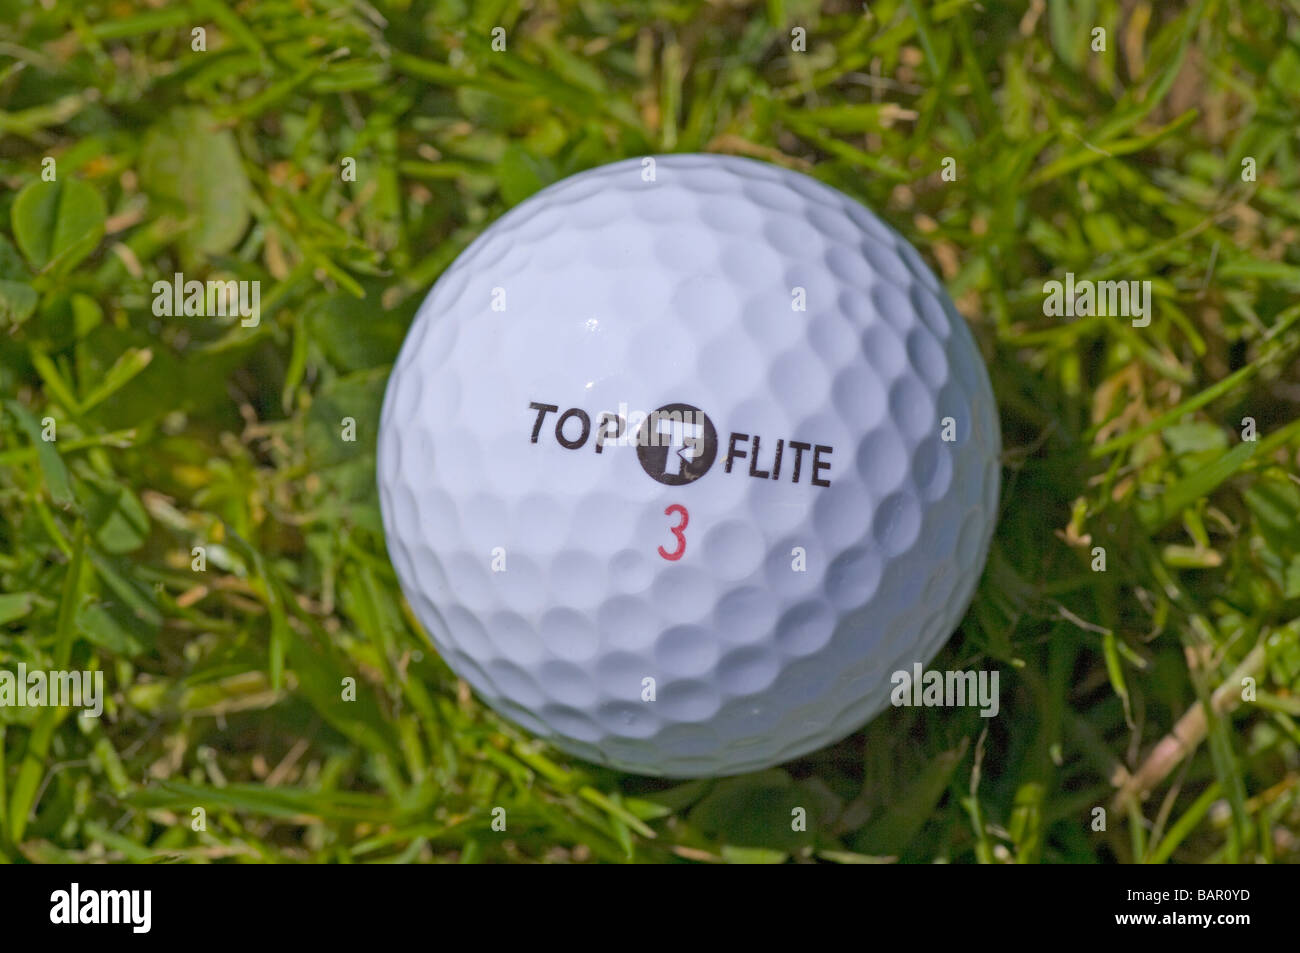 One Top Flite Golf Ball golfball On Grass - Stock Image